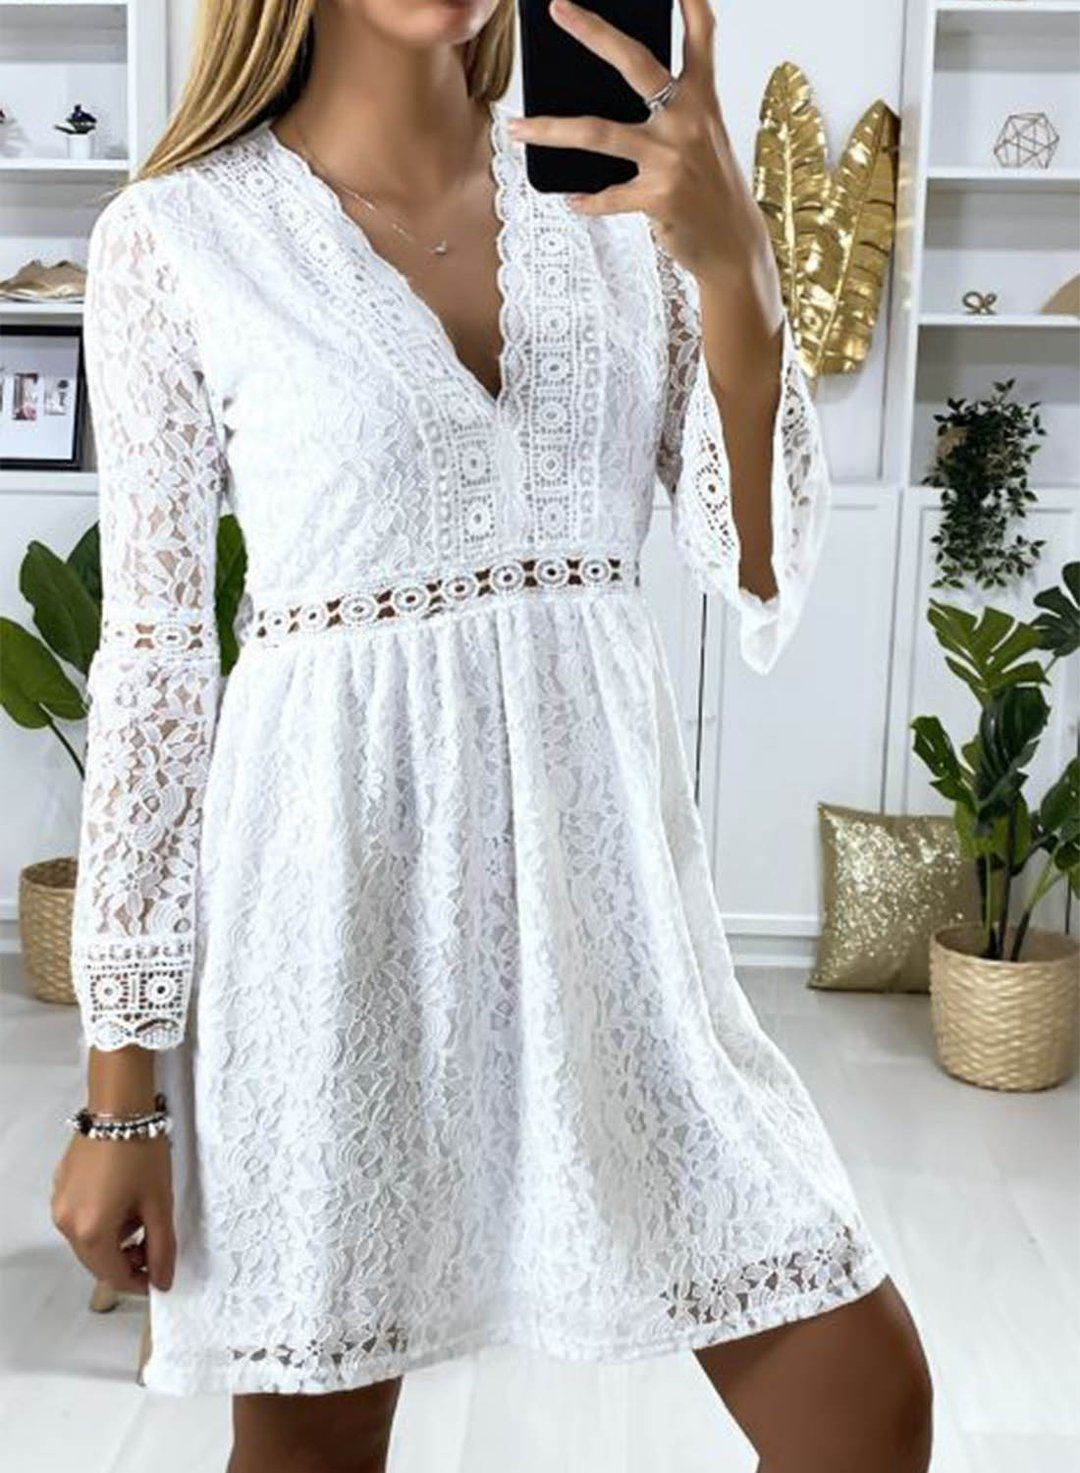 White Women's Mini Dress Solid Floral Lace Fit & Flare Long Sleeve V Neck Summer Daily Sexy Mini Dress LC225848-1